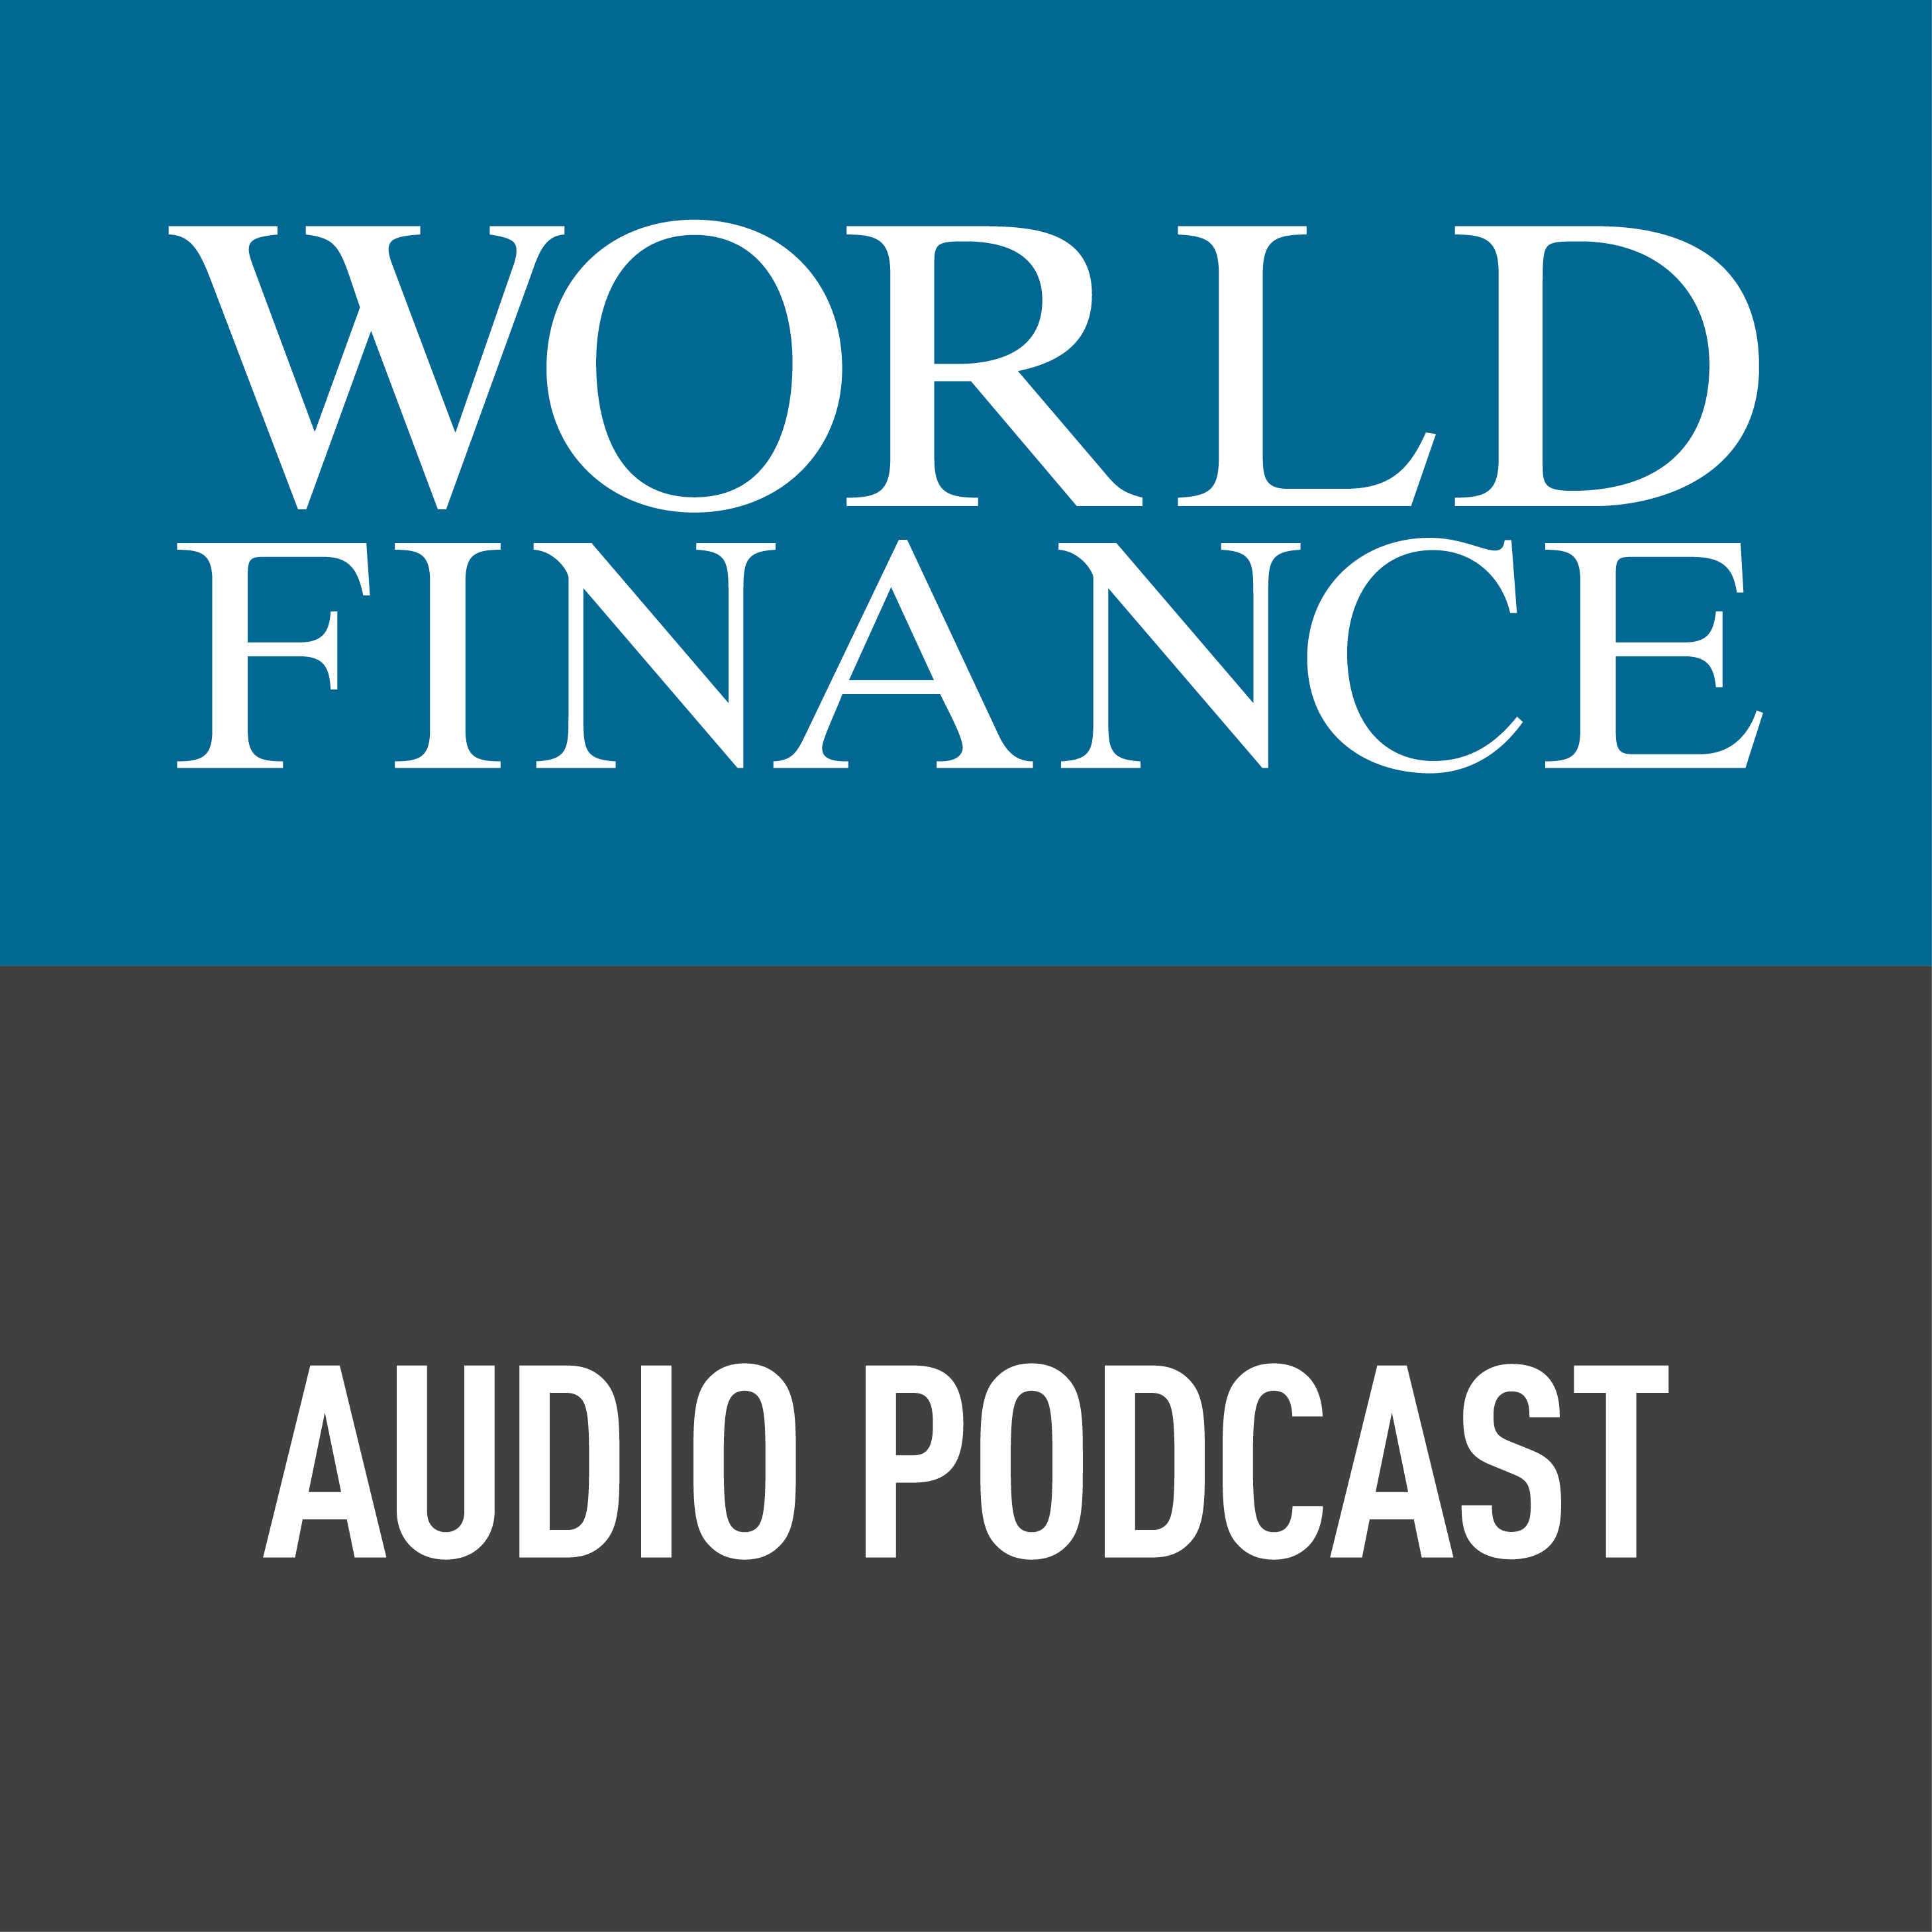 World Finance - Audio Podcasts